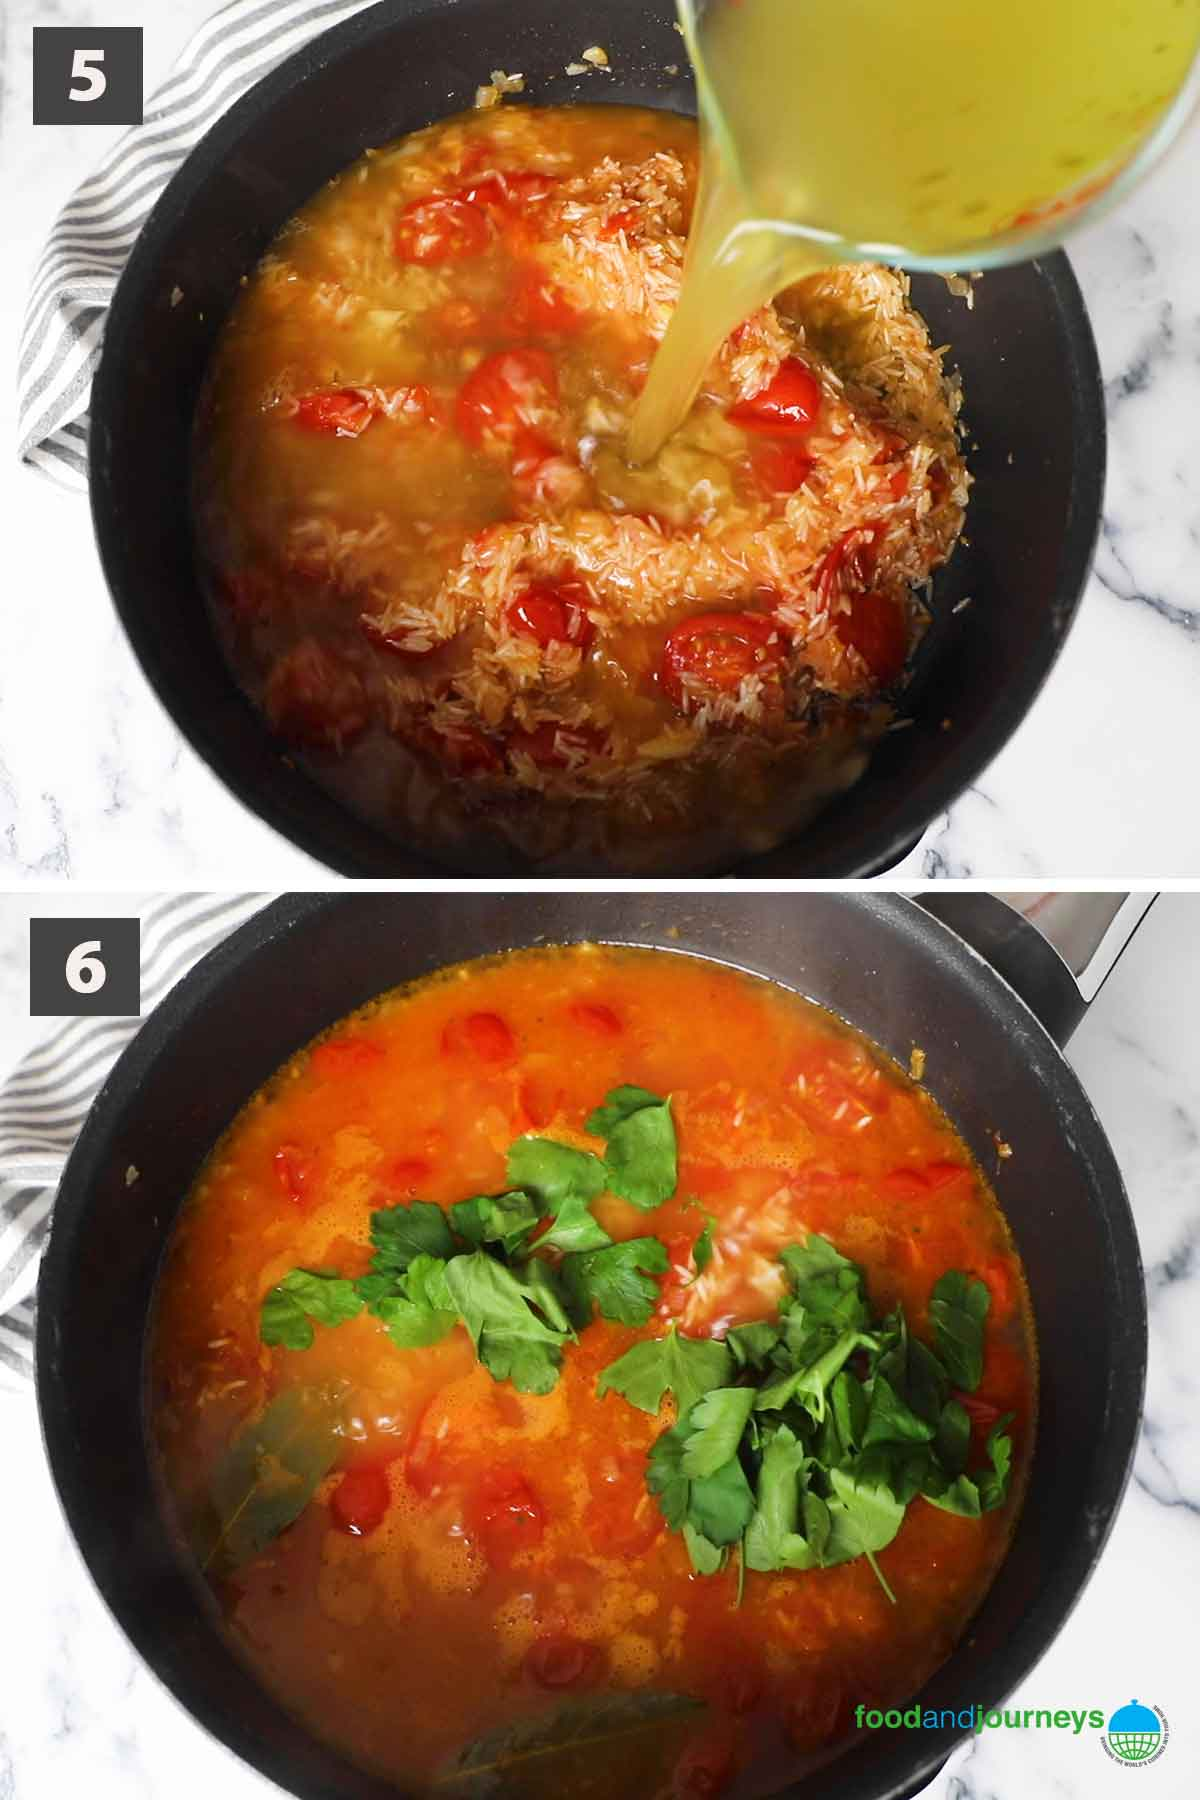 Latest last part of a collage showing the steps to make tomato rice at home.